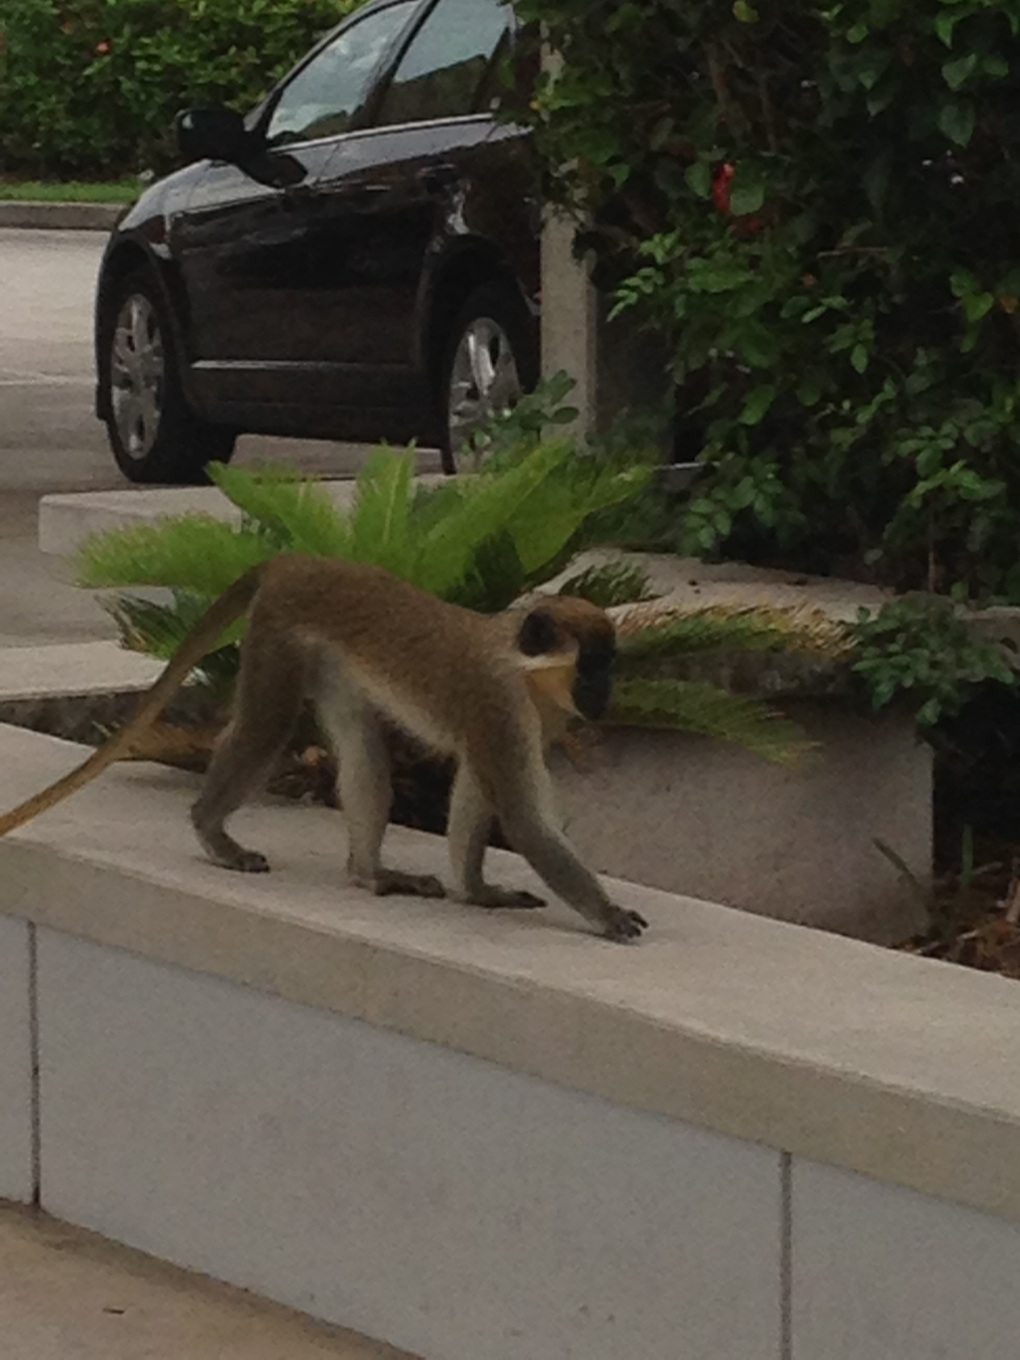 This little monkey was one of nearly a dozen strolling around the rental agency's parking lot.